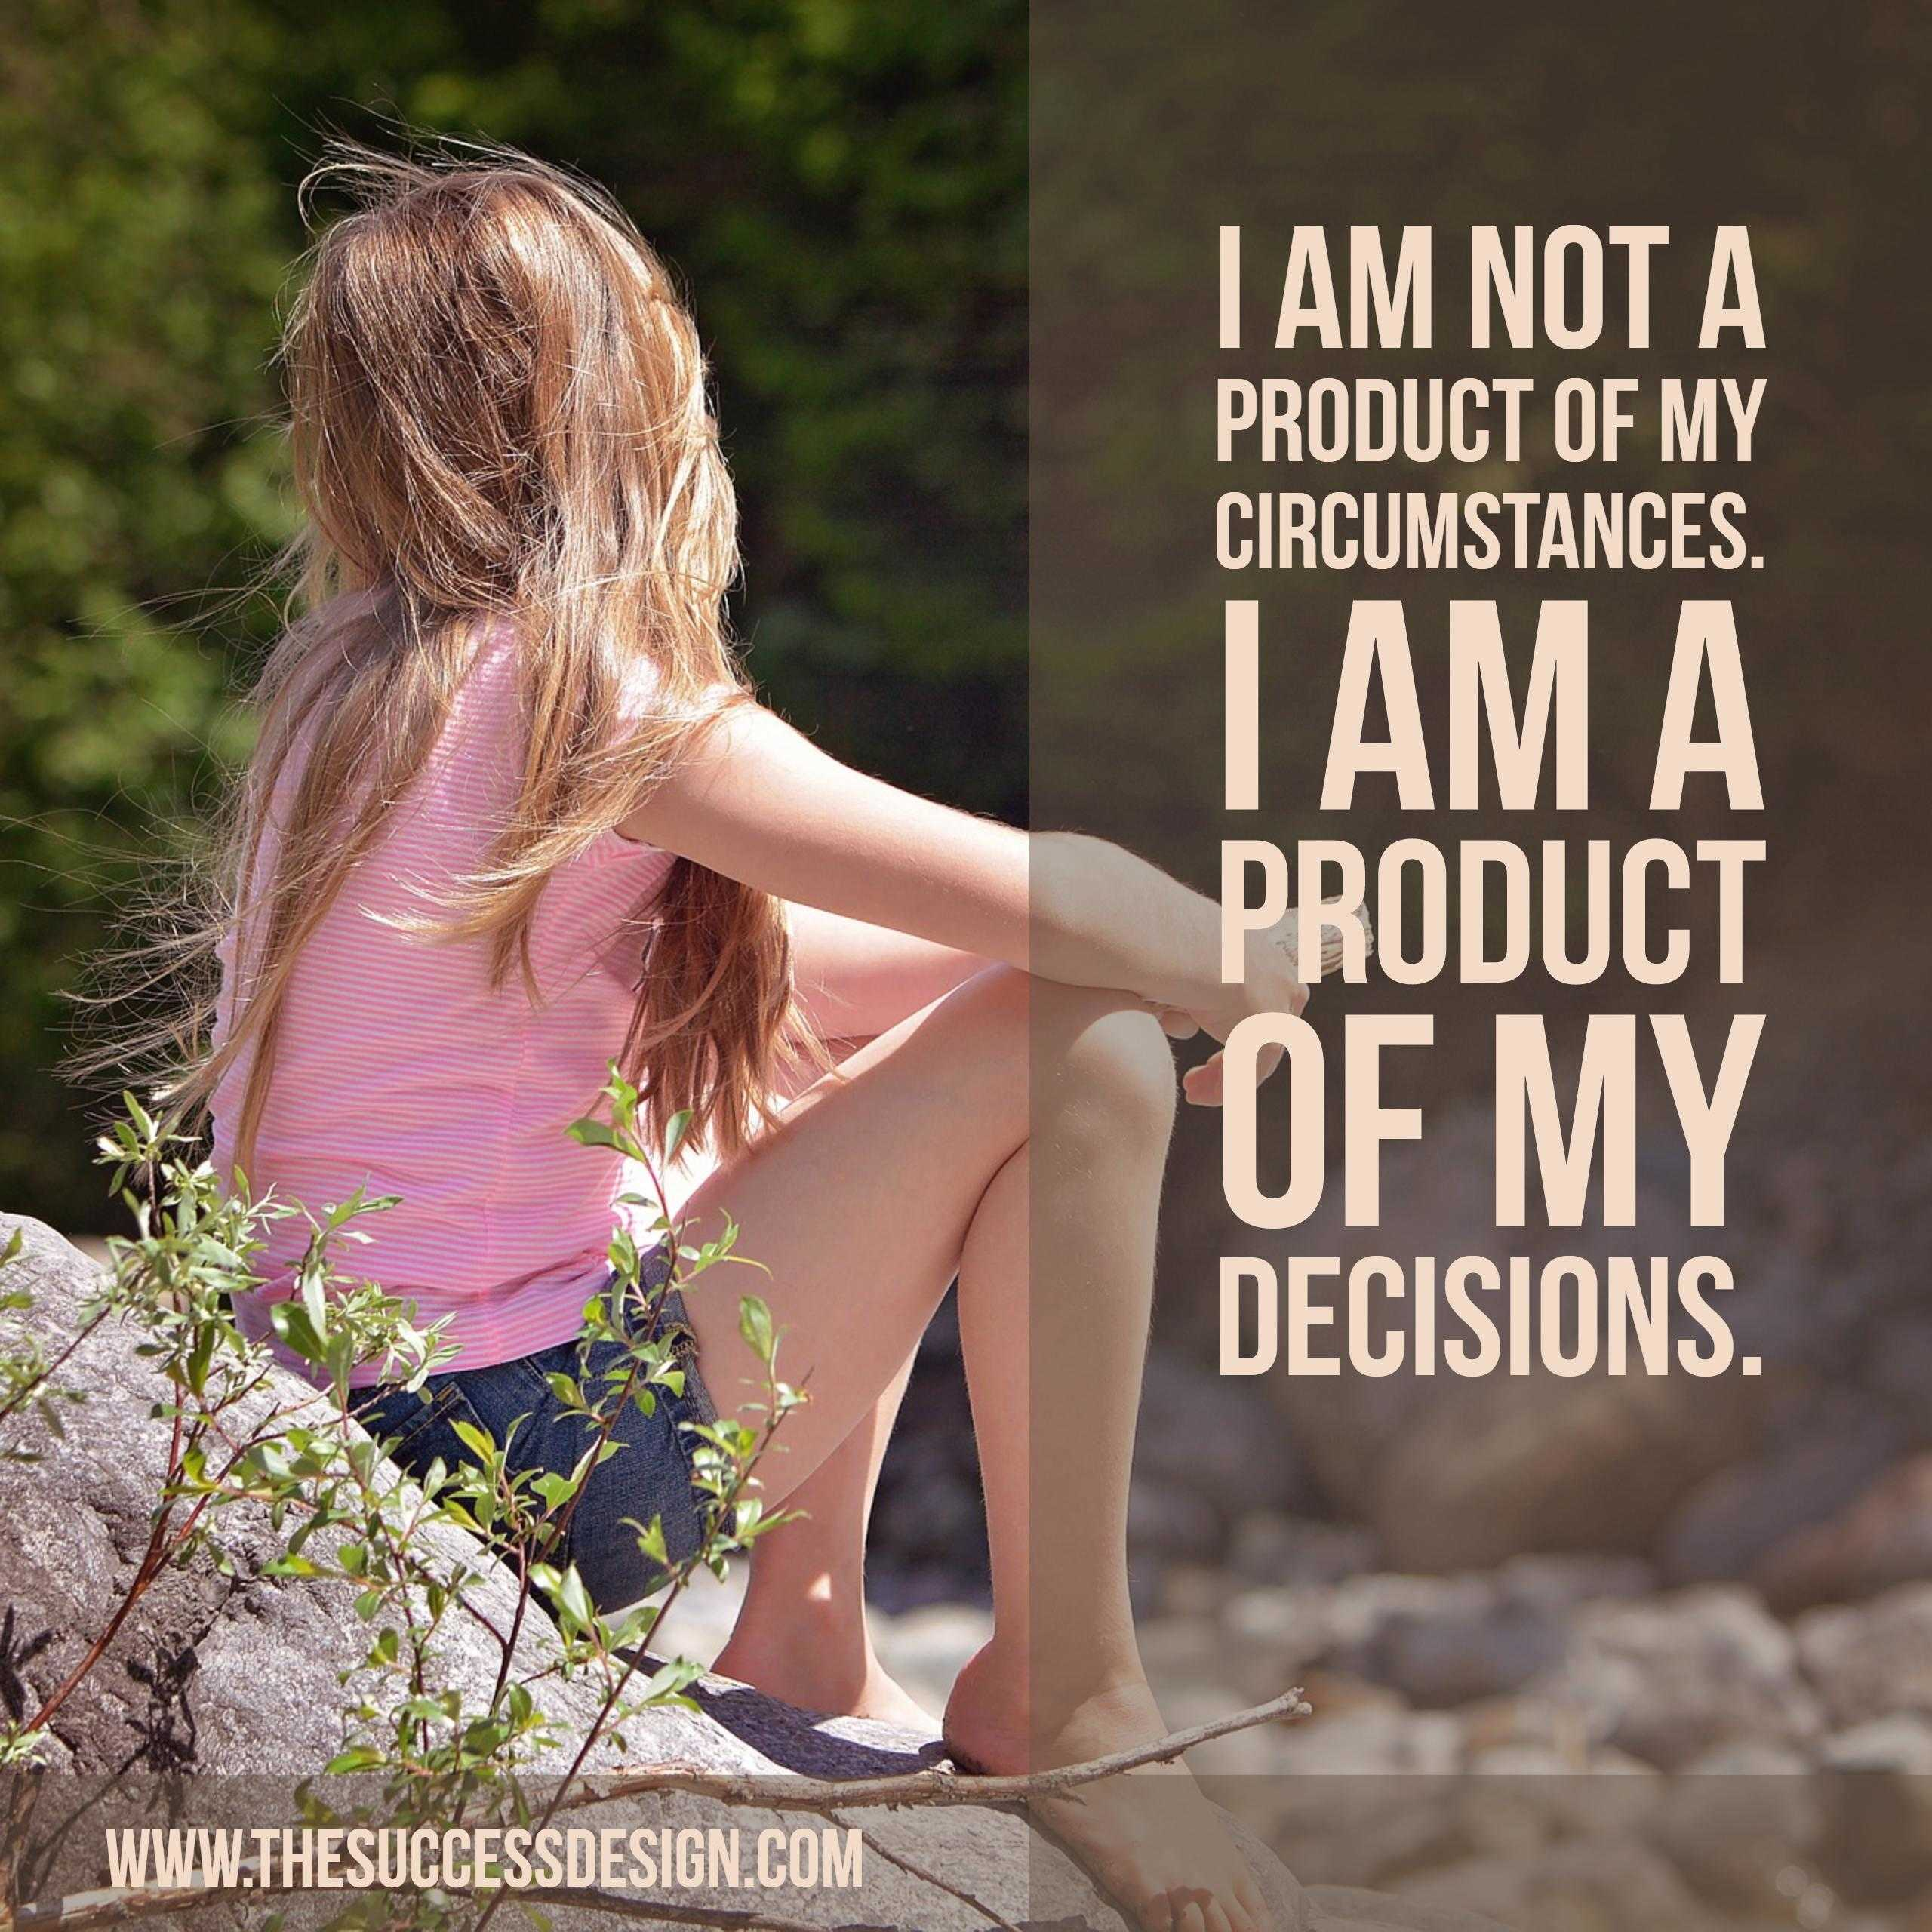 Are You a Product of Your Circumstances or Decisions?